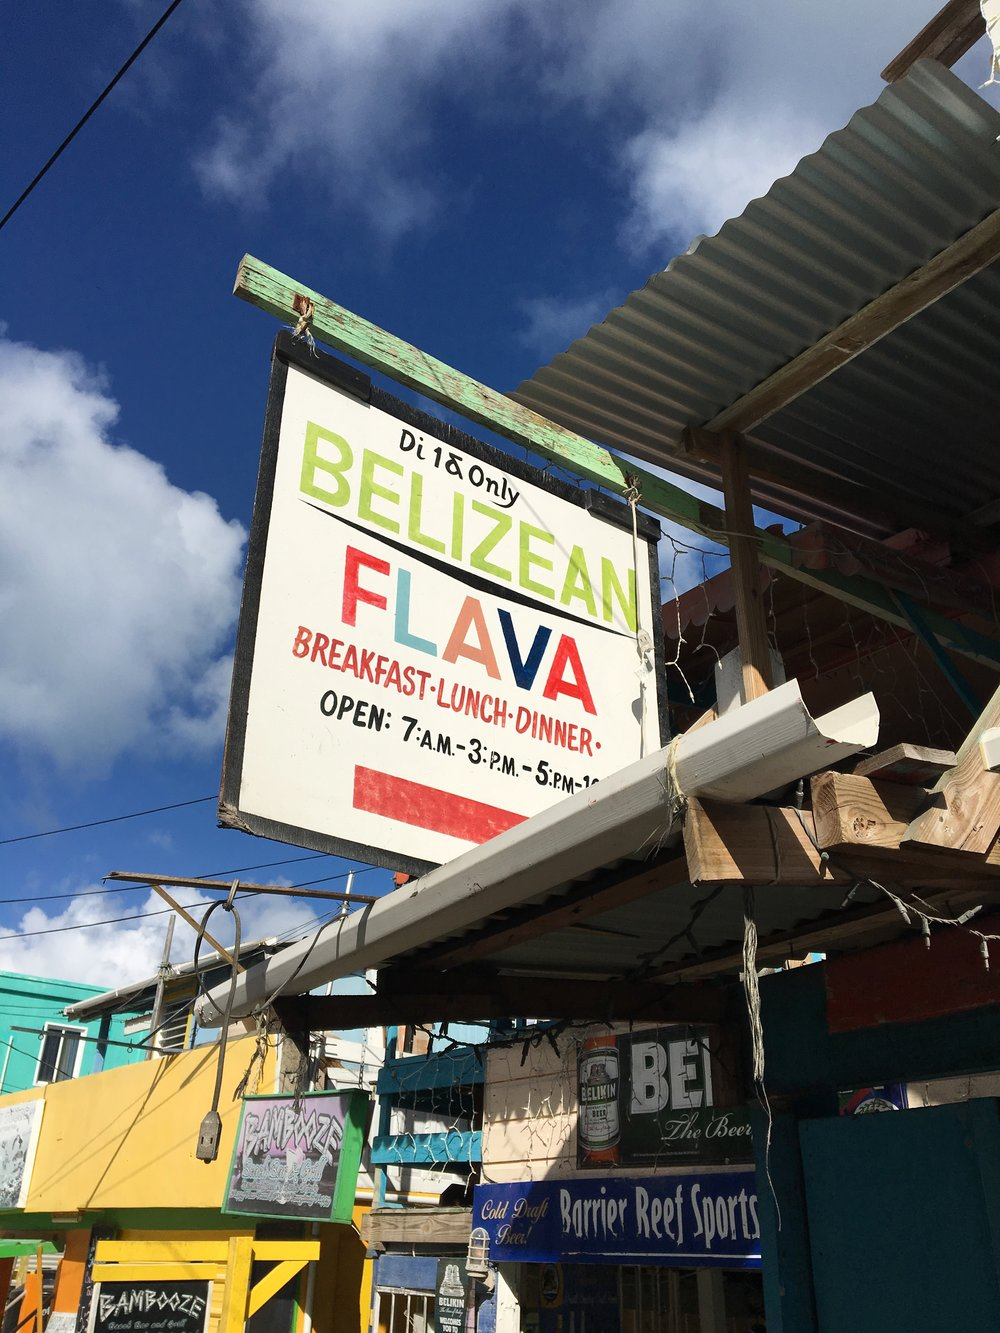 Belizean Flava & Barrier Reef Sports Bar